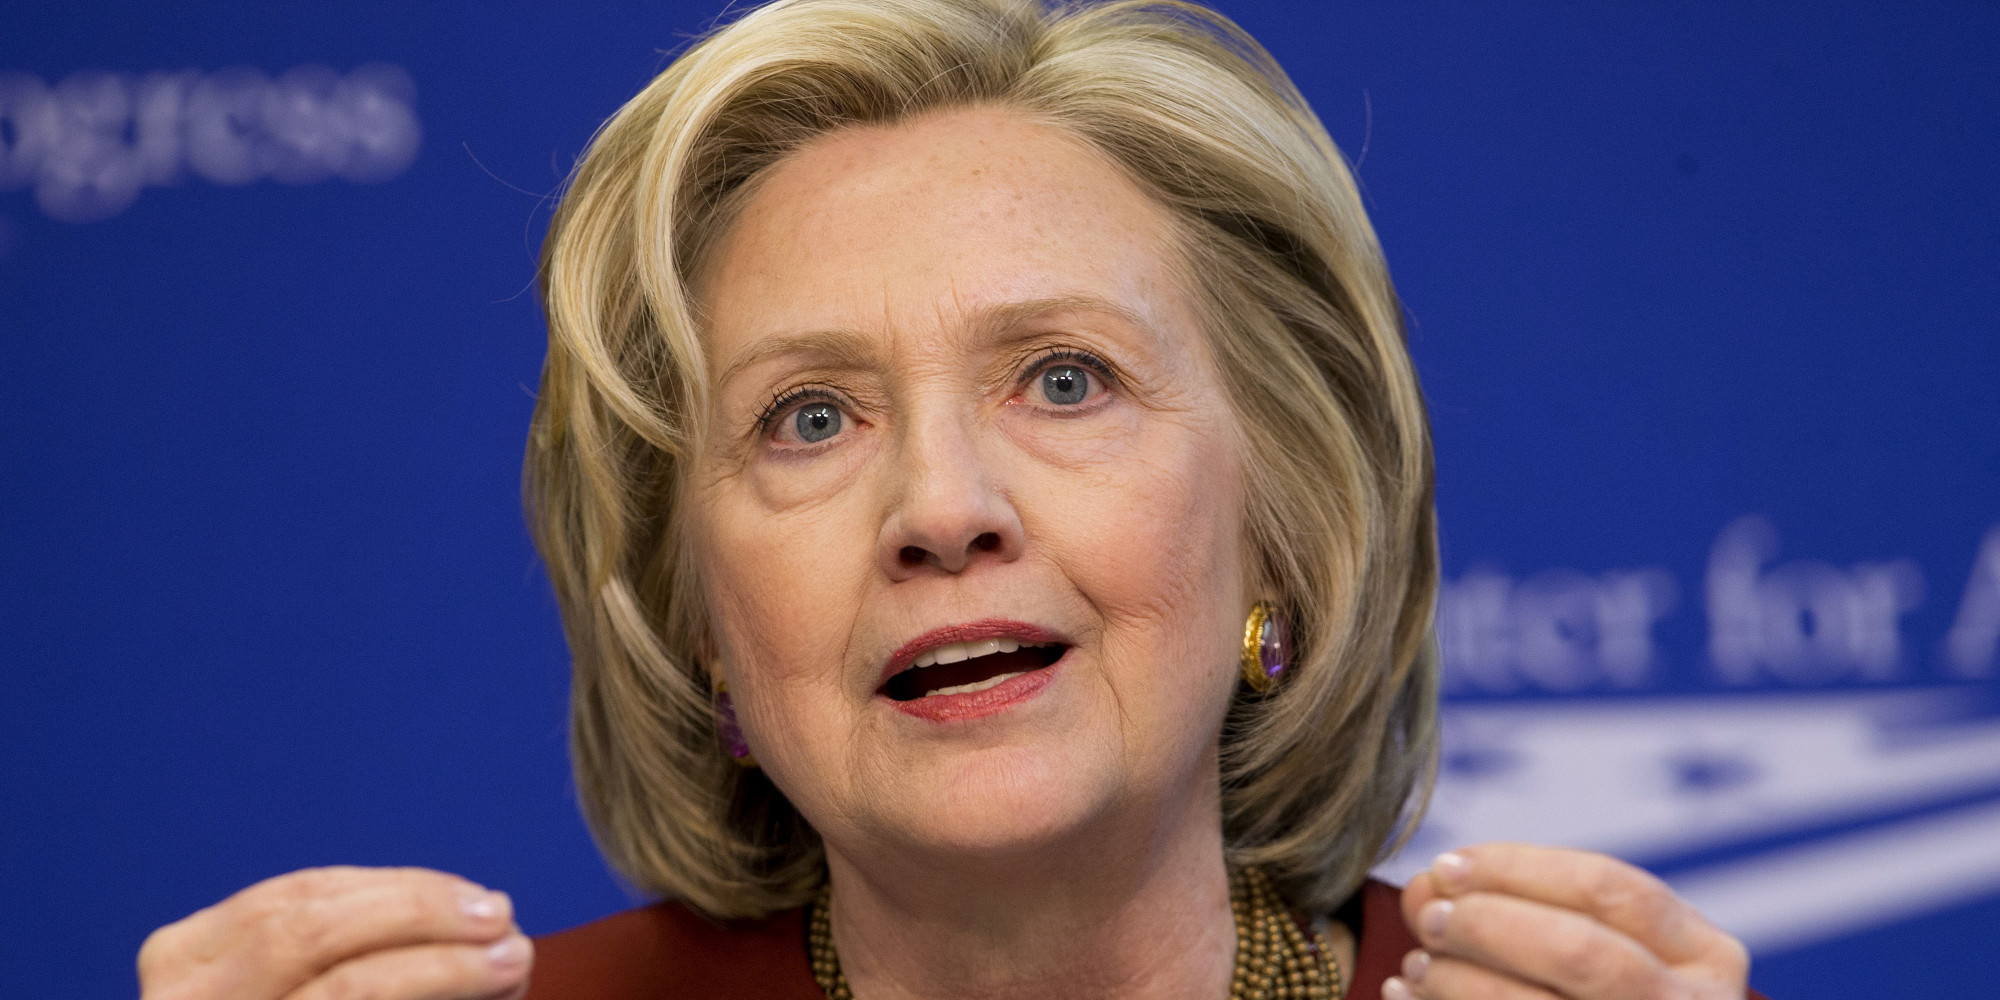 LPAC Endorses Hillary Clinton for President